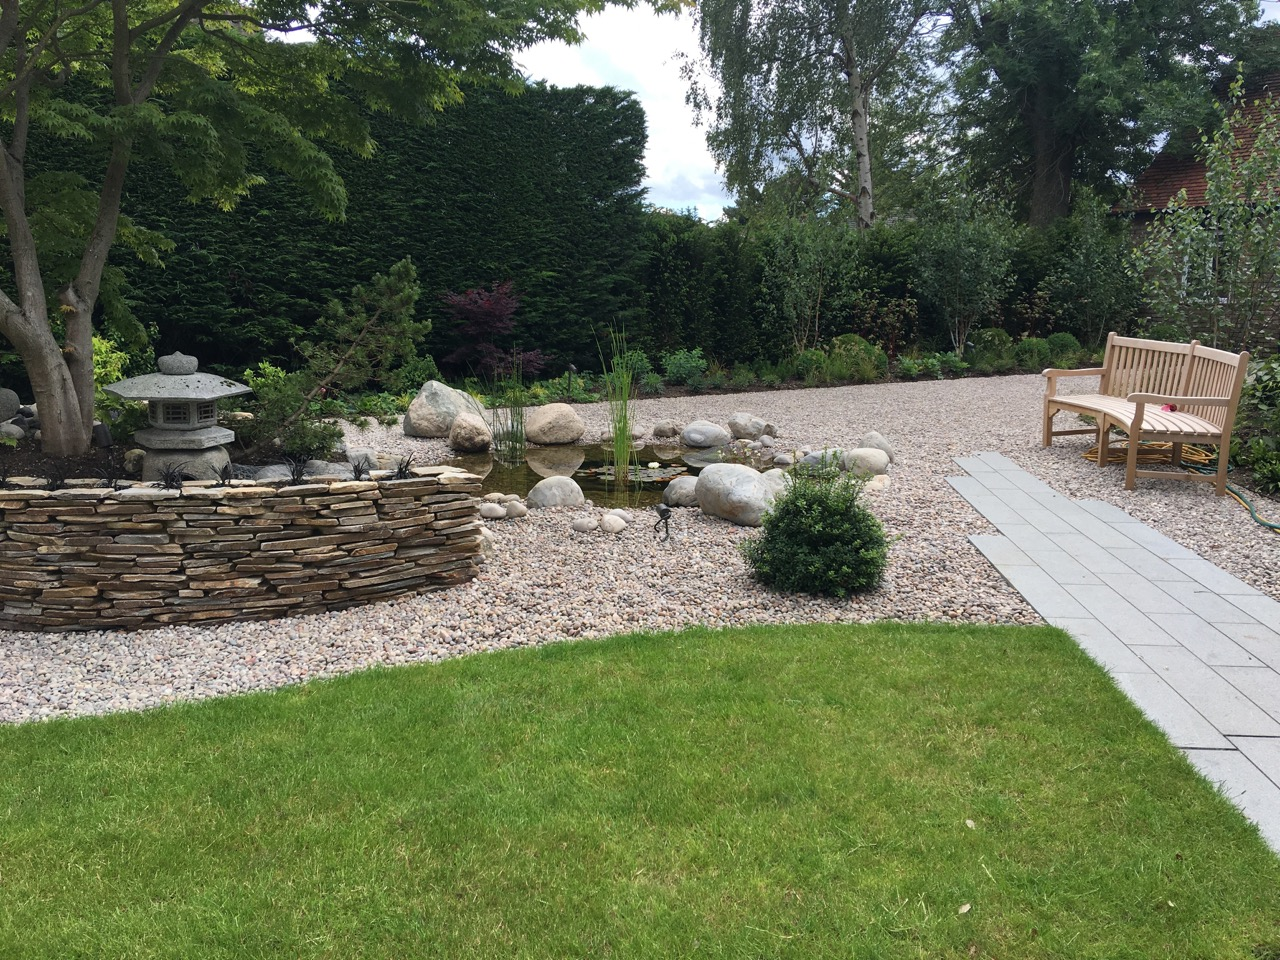 Blue Grey Granite Plank Paving, CEDAgravel and Yellow Paddlestone Walling